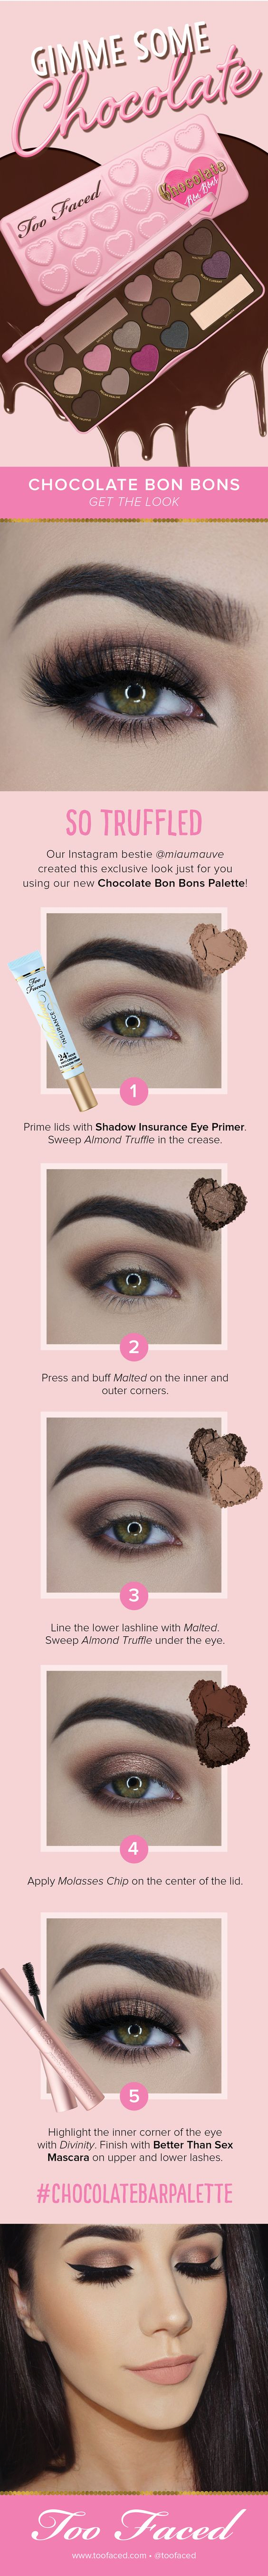 Chocolate Bon Bons is the third palette in the #TooFaced bestselling Chocolate Bar Eye Shadow Collection. The looks are limitless. - Too Faced Cosmetics: